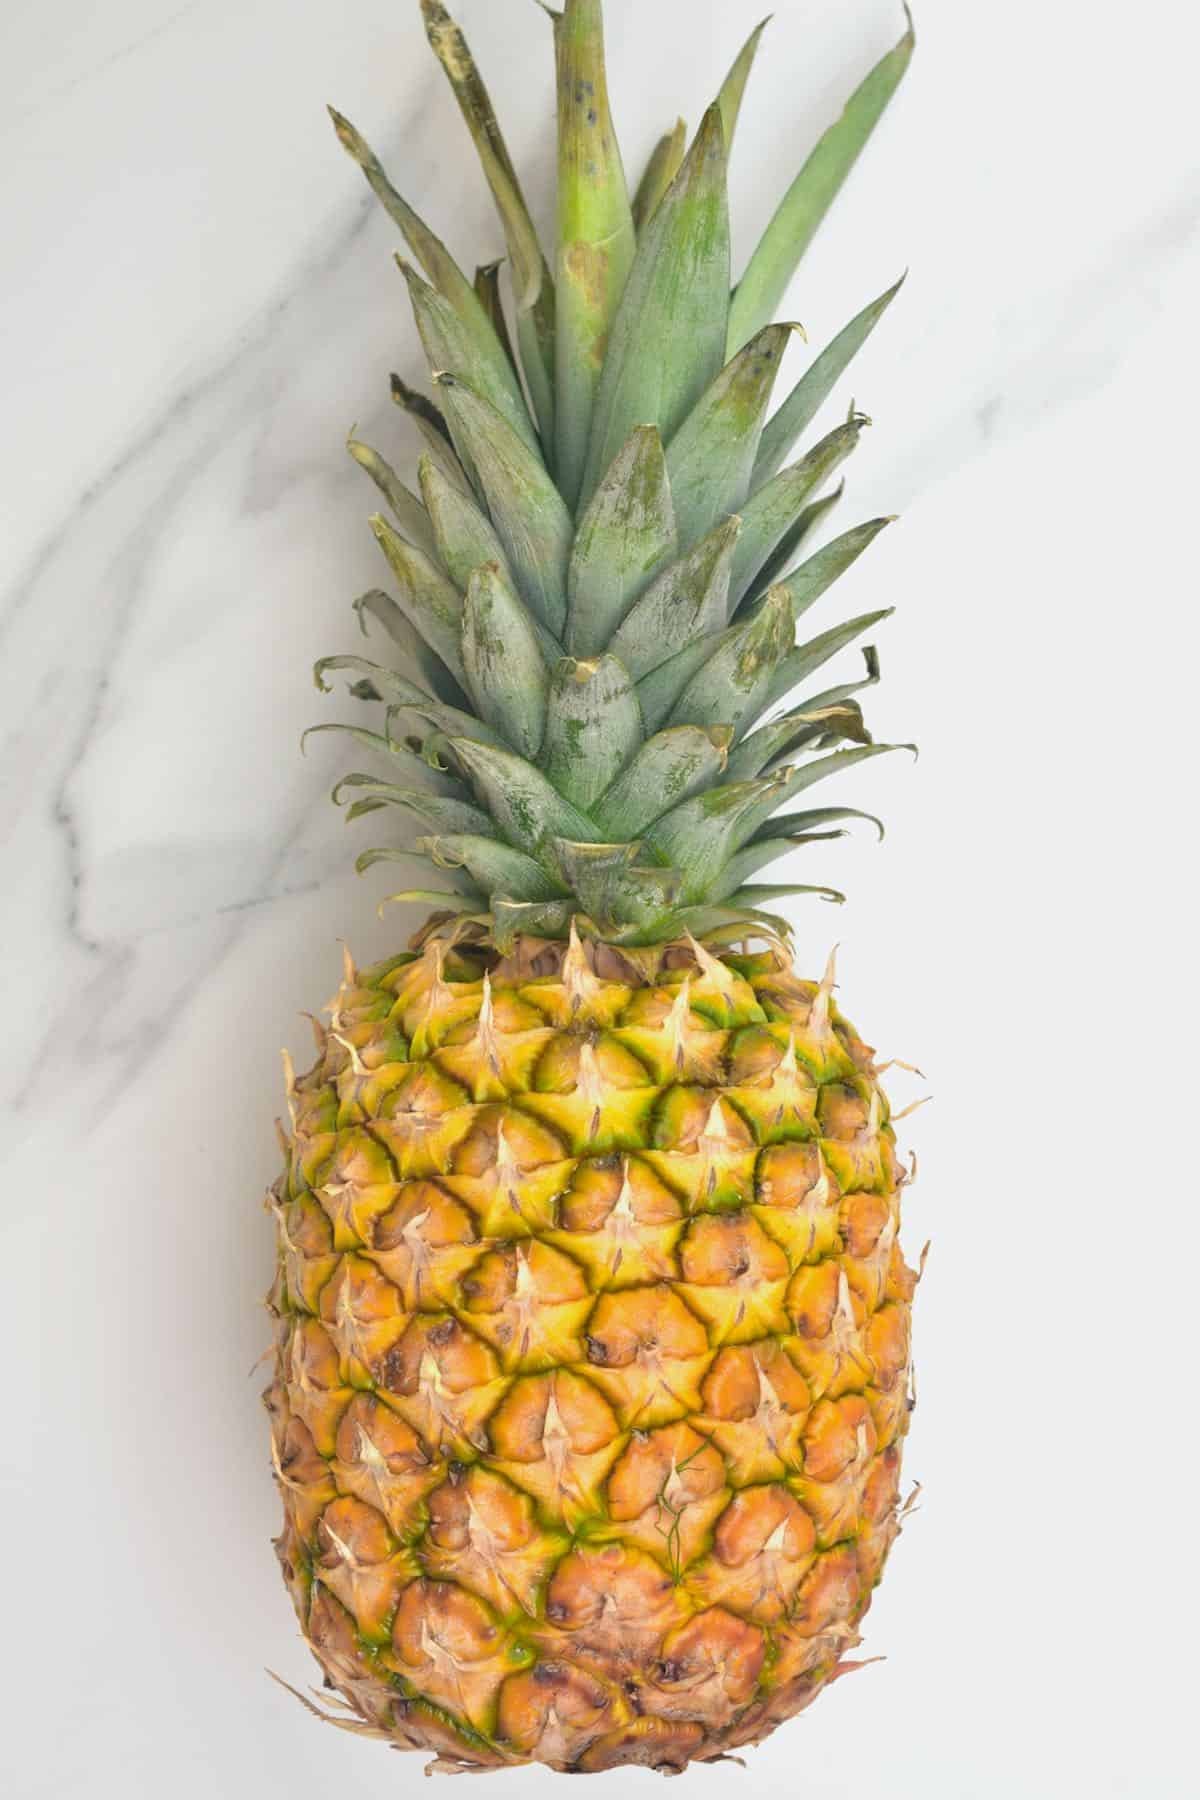 A pineapple on a flat surface